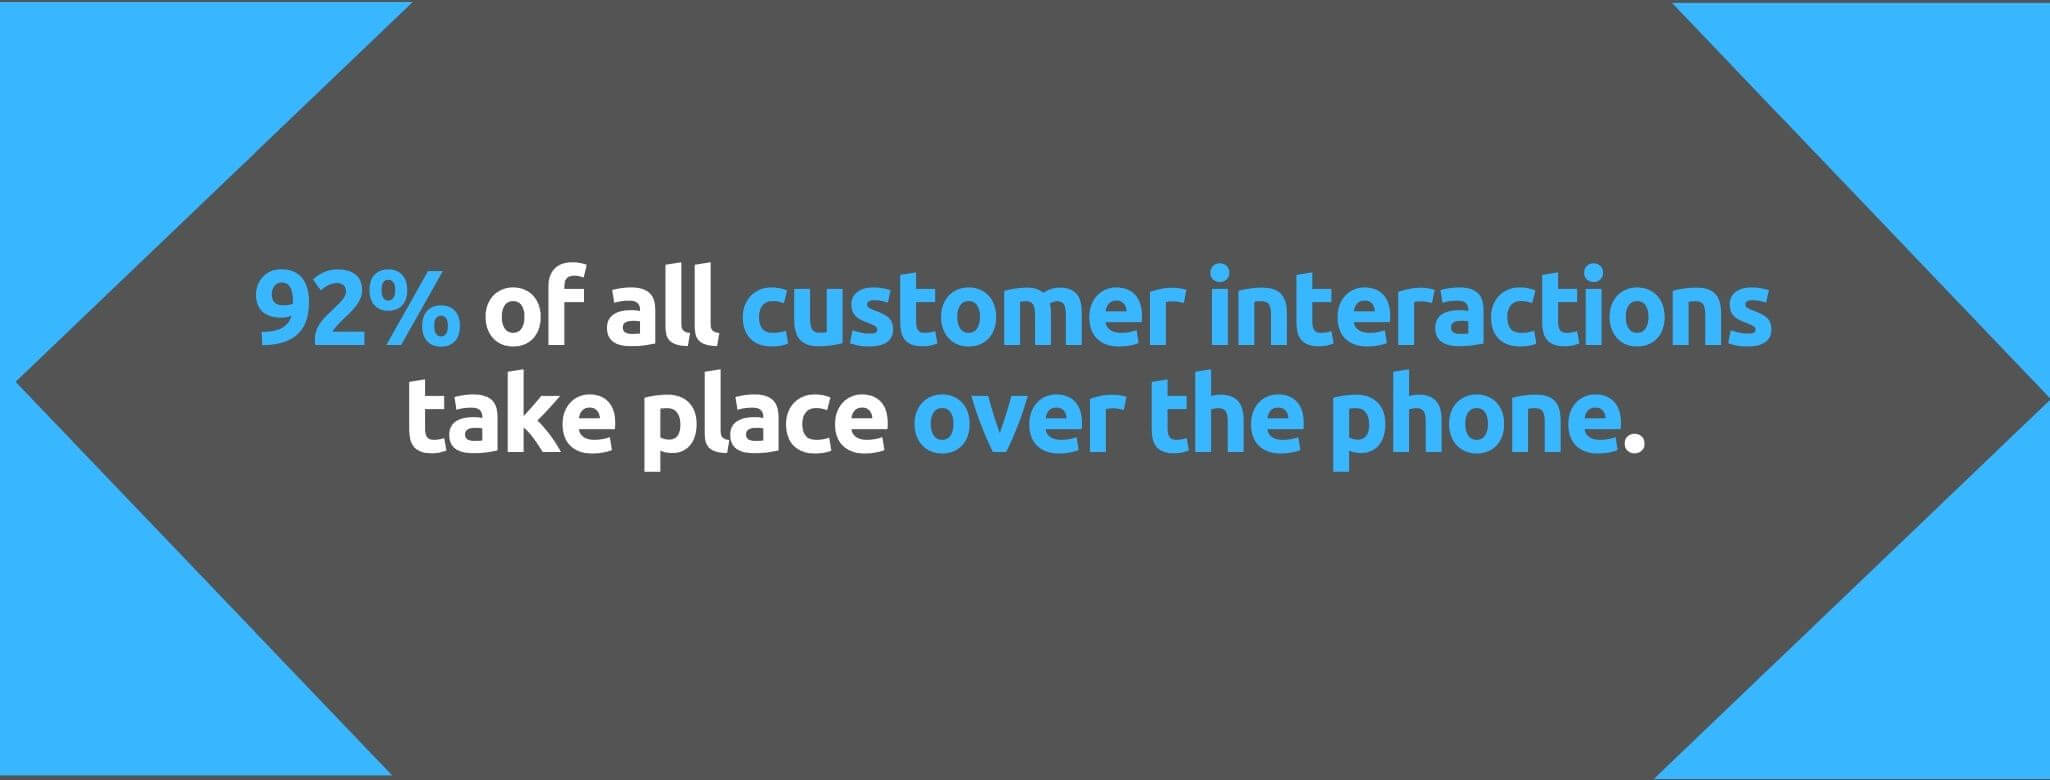 92% of all customer interactions take place over the phone - 91 Sales Stats You Can't Afford to Miss - Replyco Helpdesk Software for eCommerce